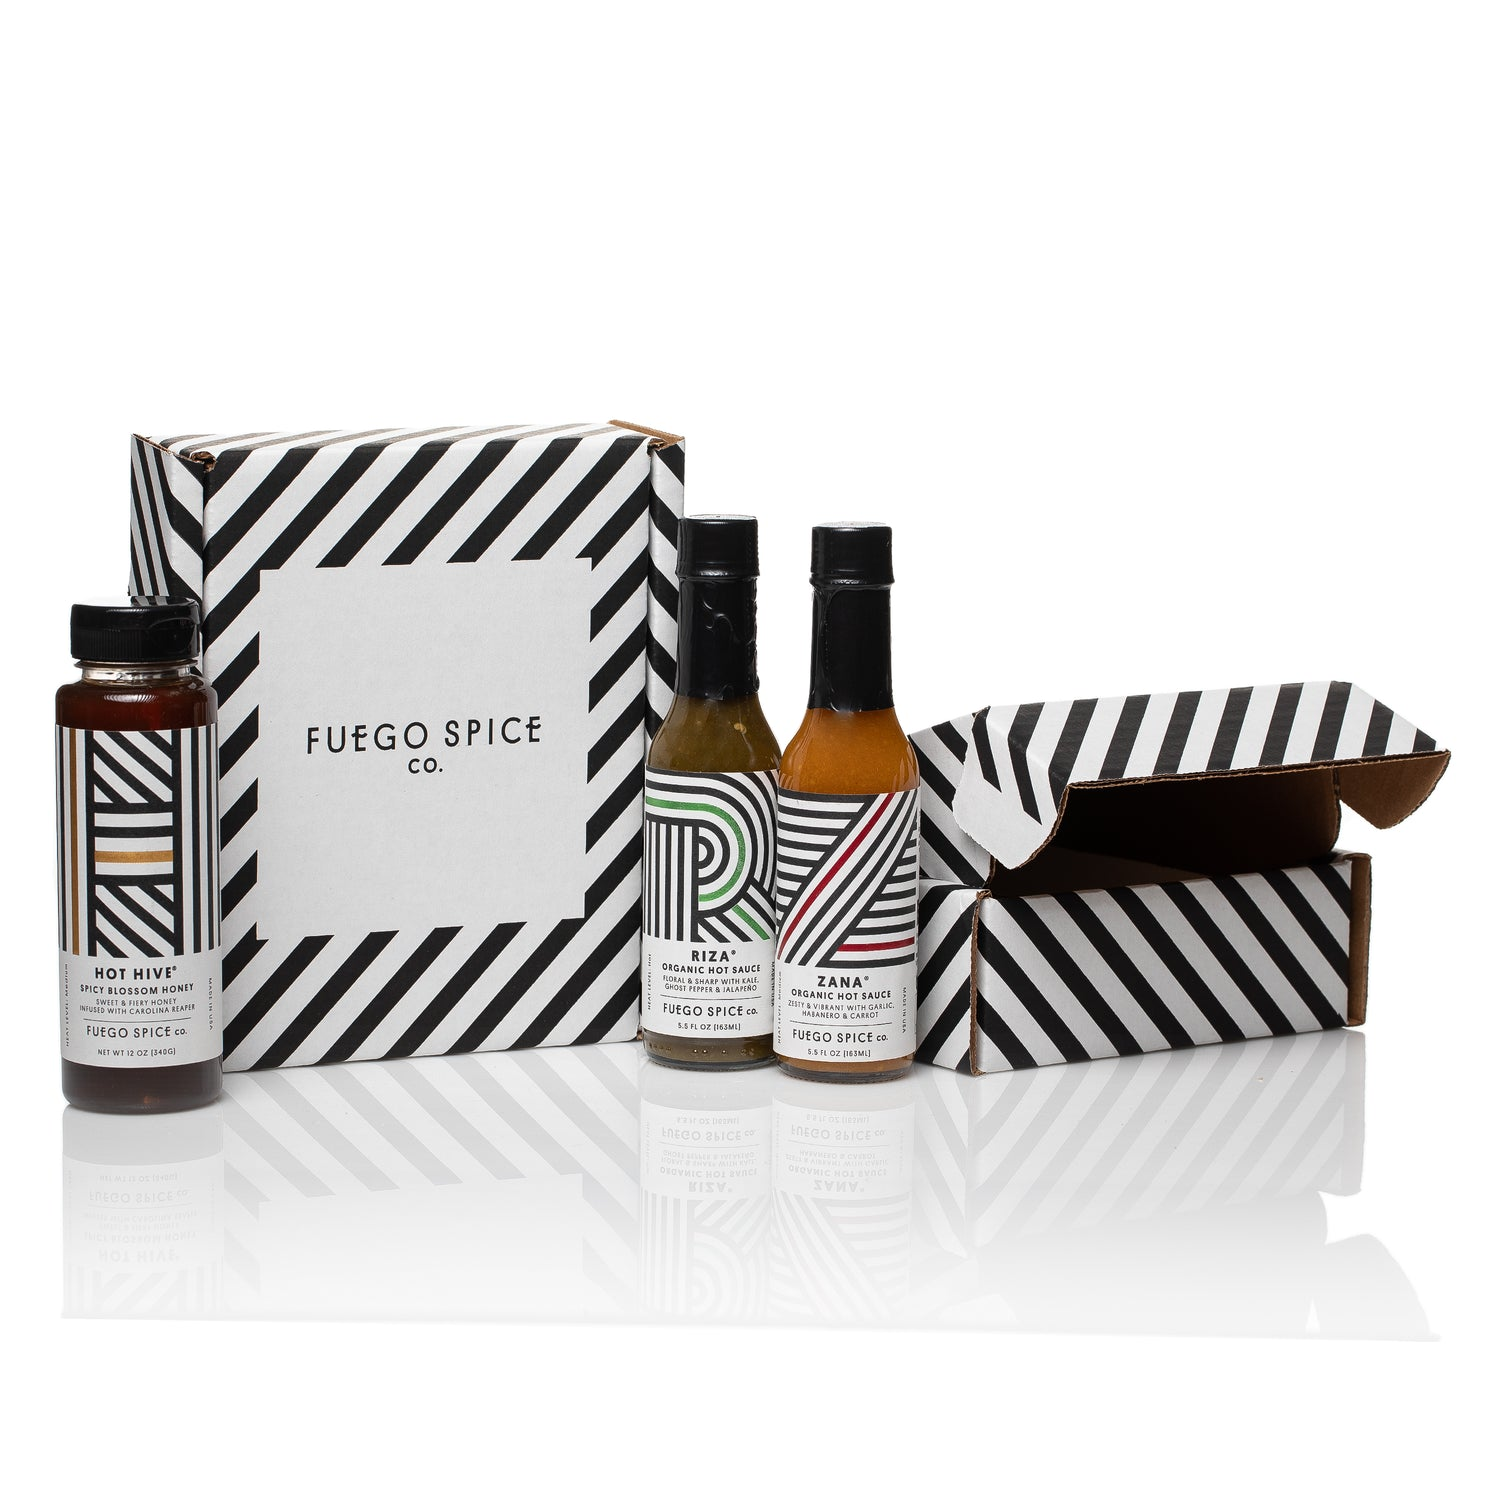 Fuego Spice Co. 3-Pack Gift Set